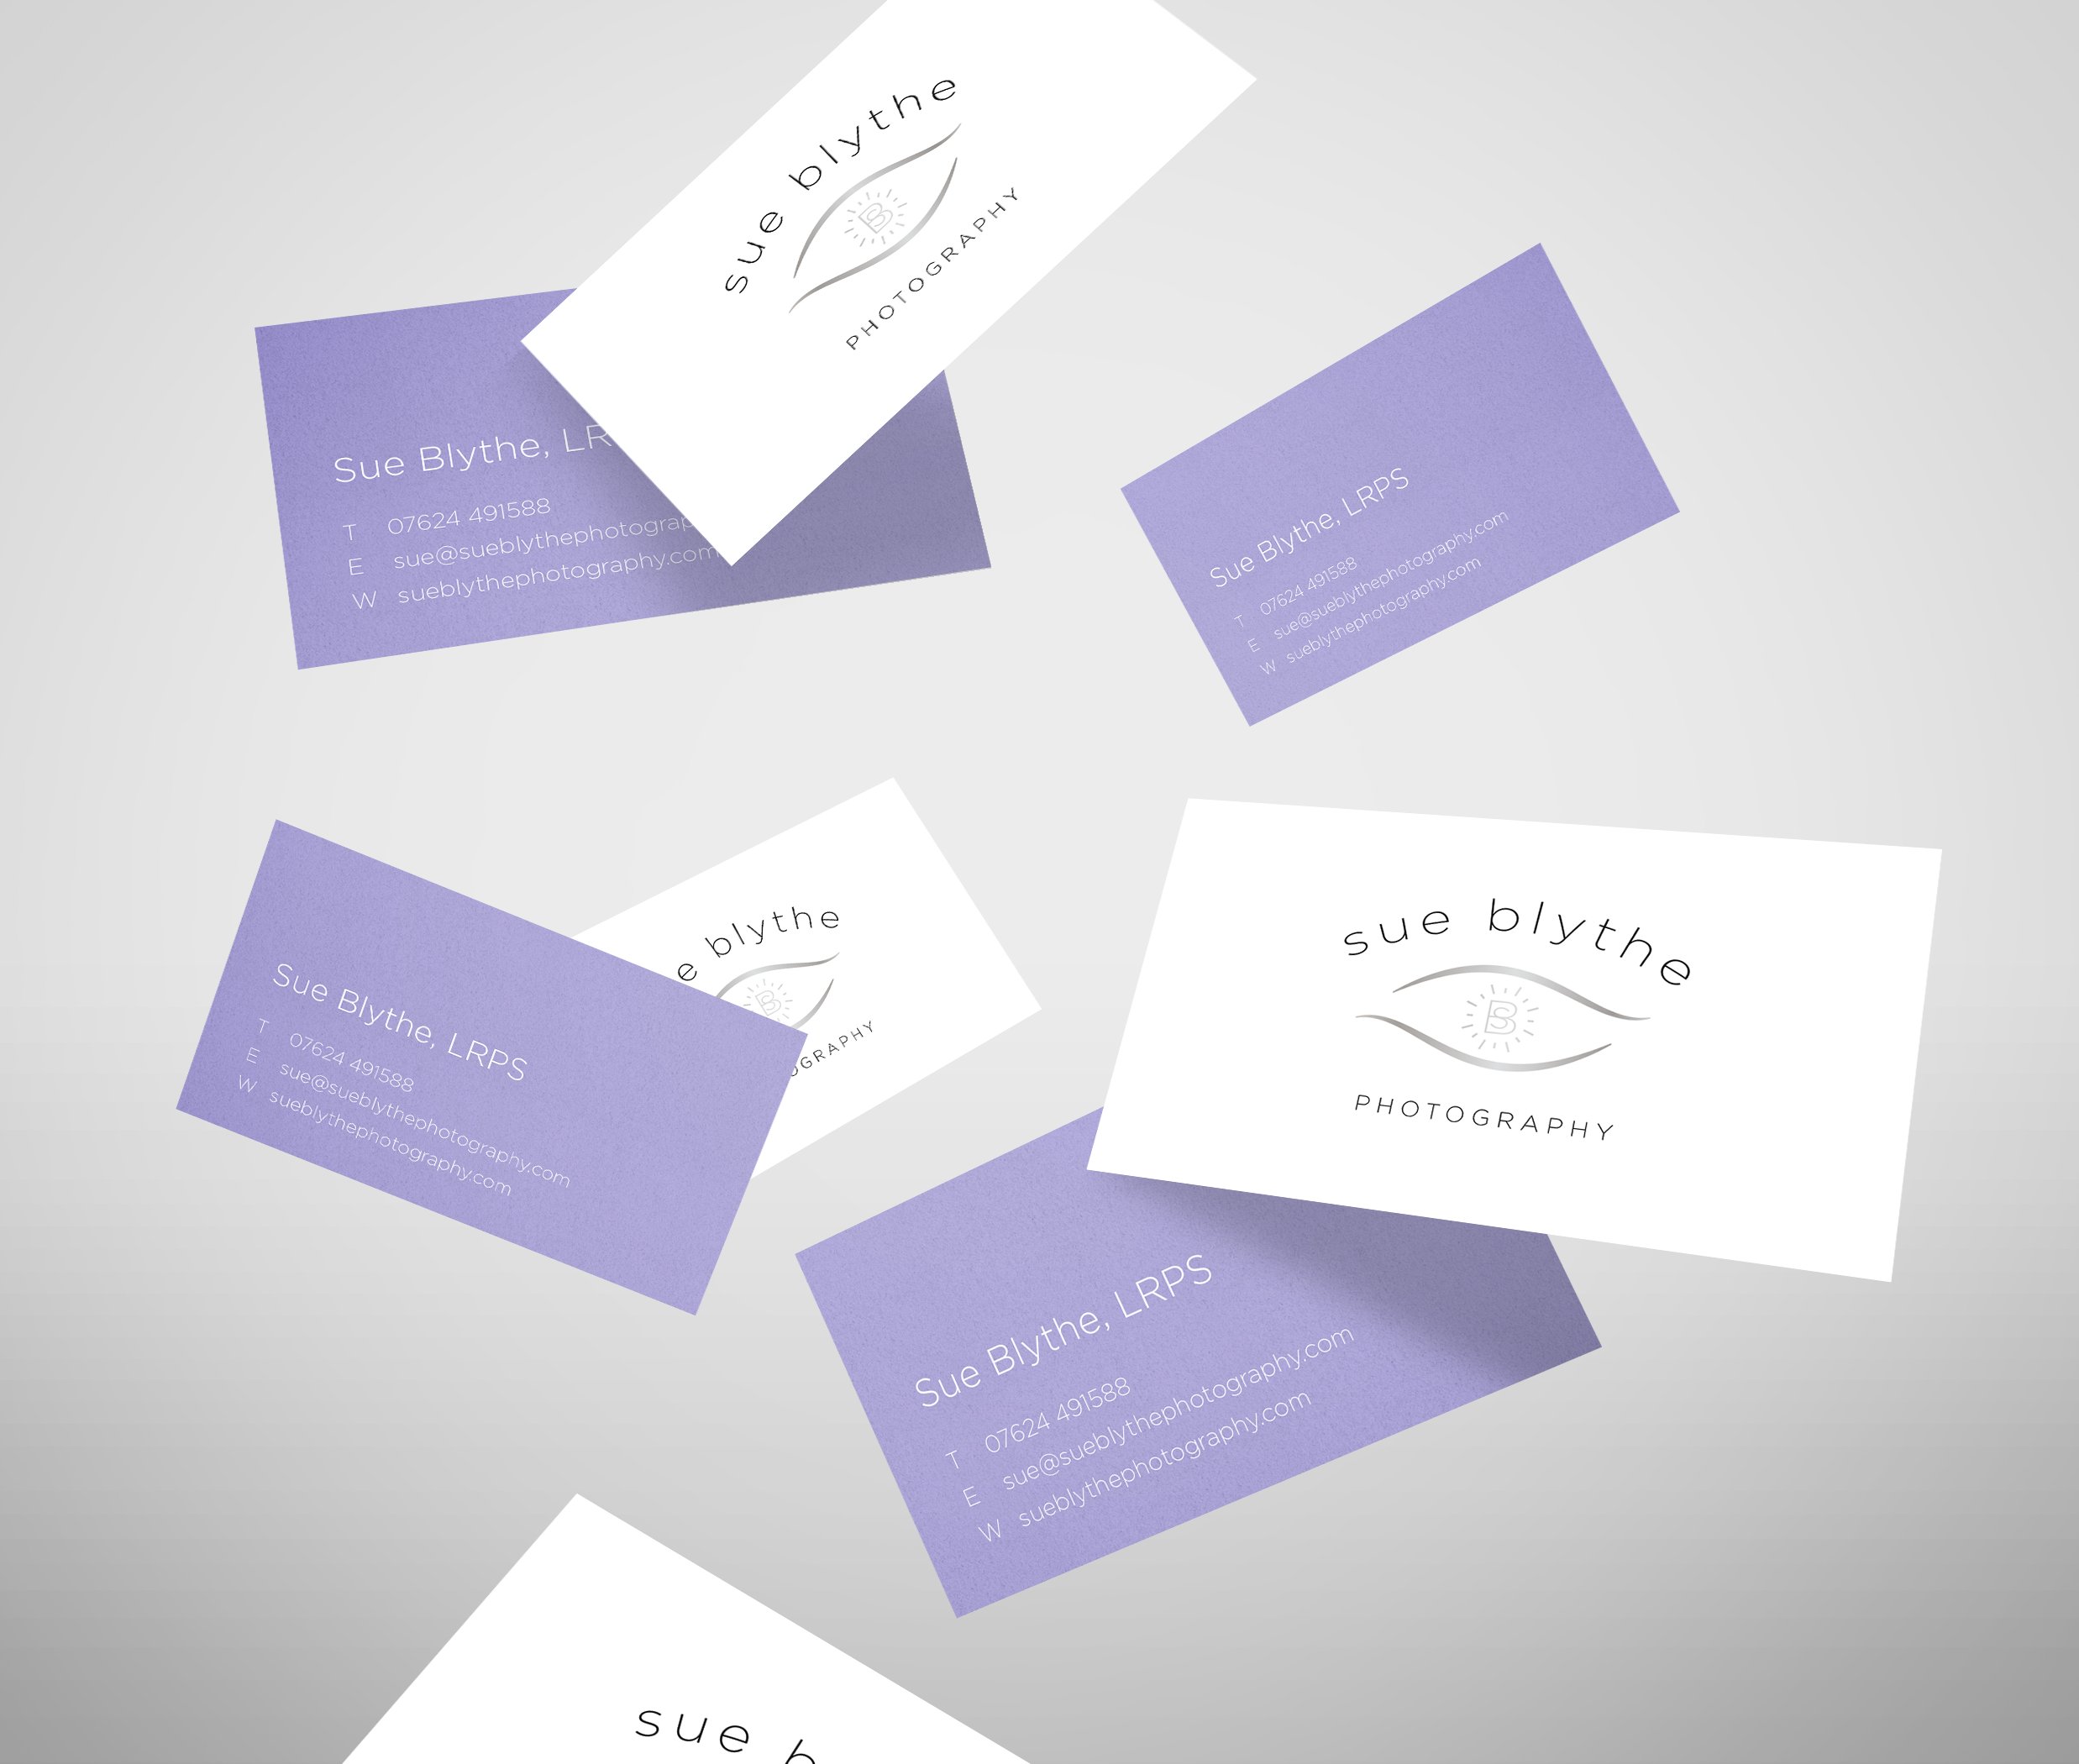 Flying Business Cards.png